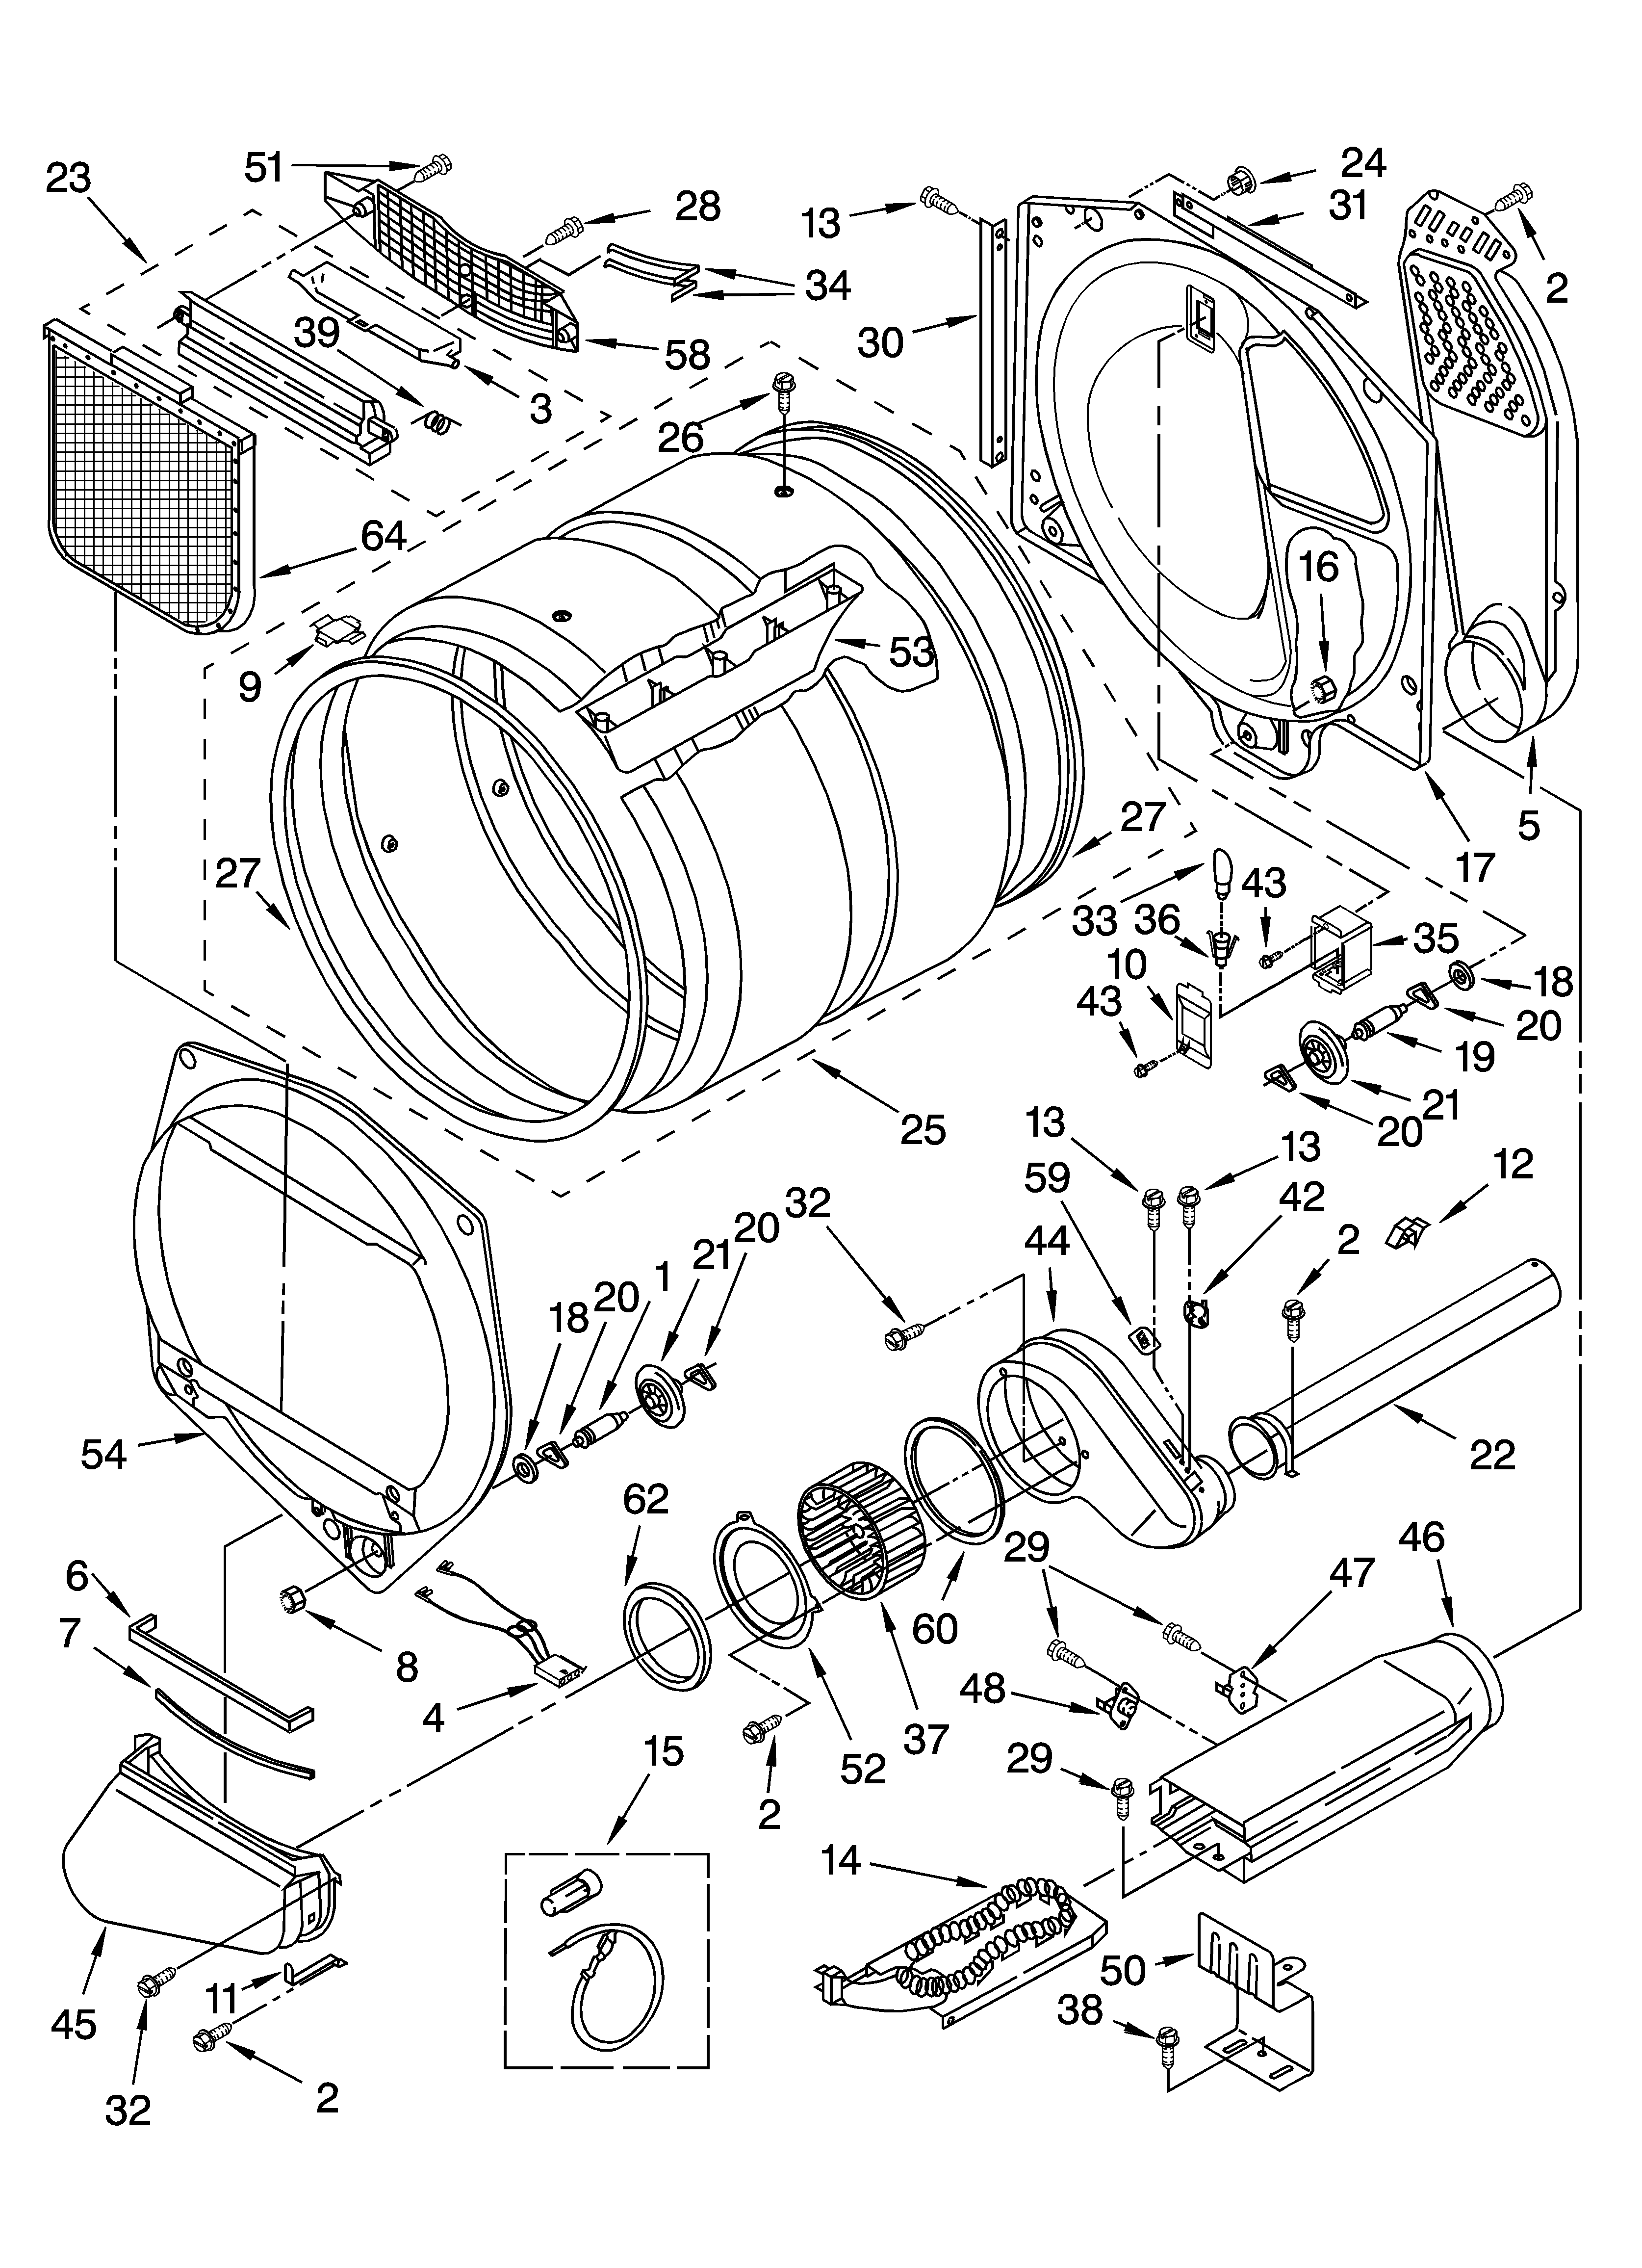 He3t Schematic - Wiring Diagrams on